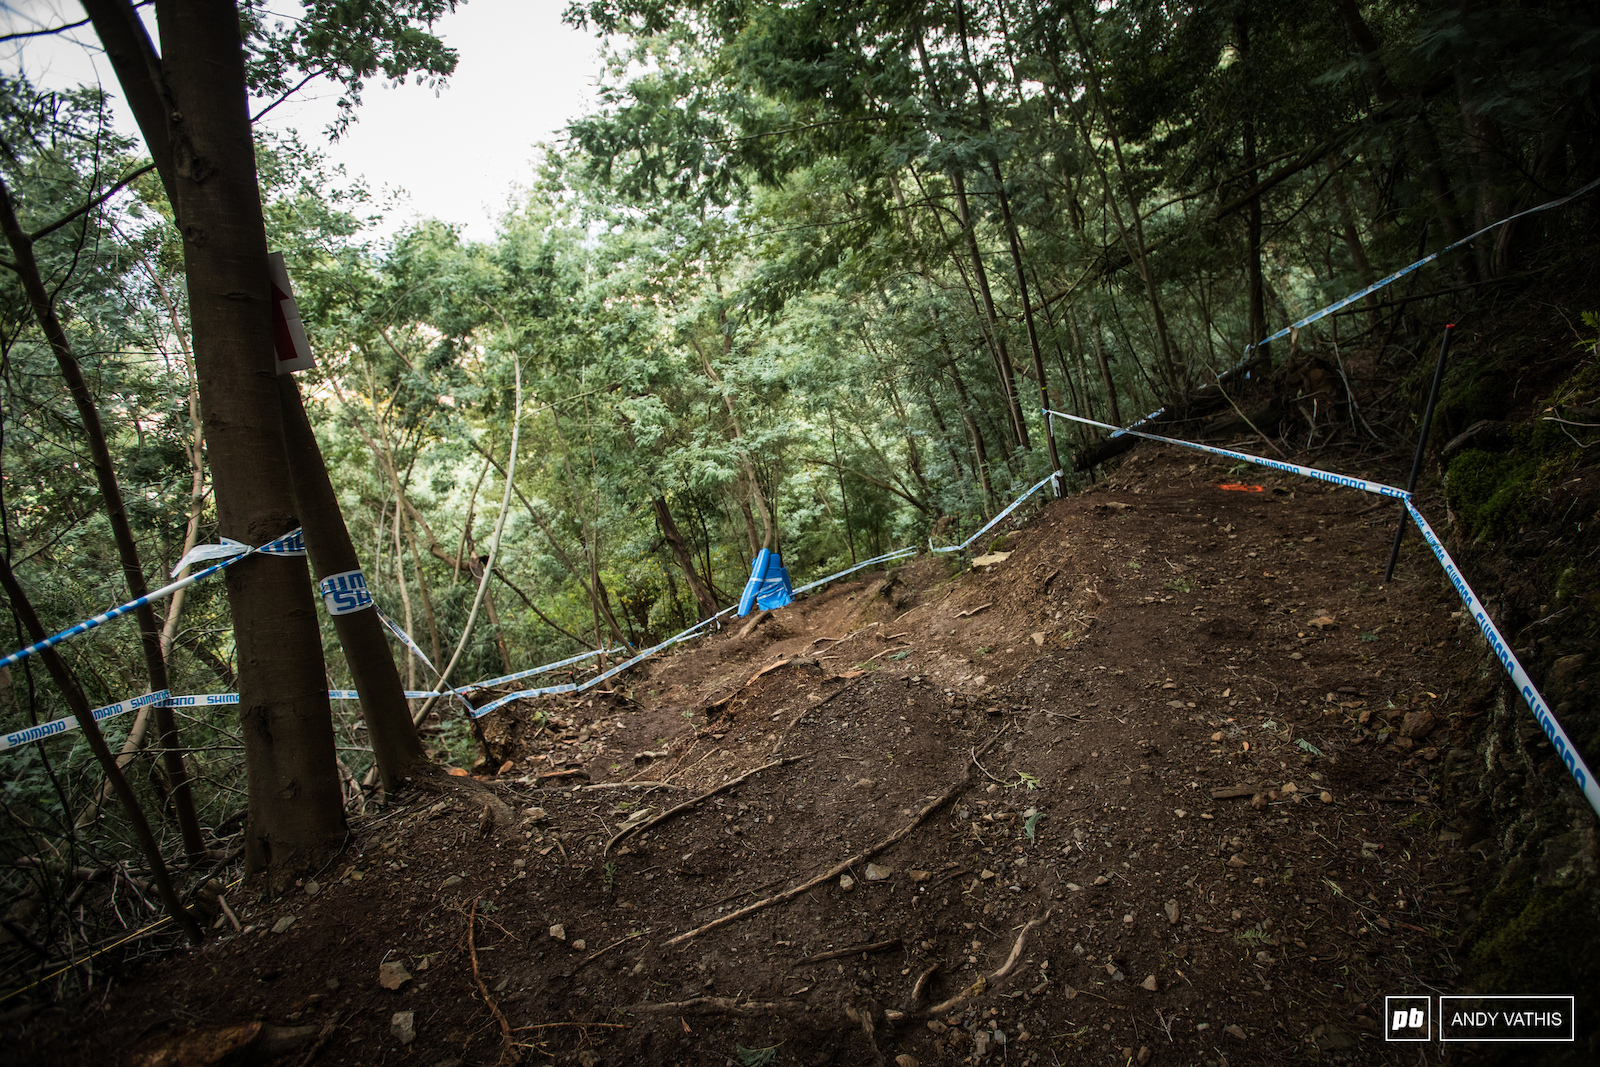 After a short break the track goes steep again for the last bit of woods.